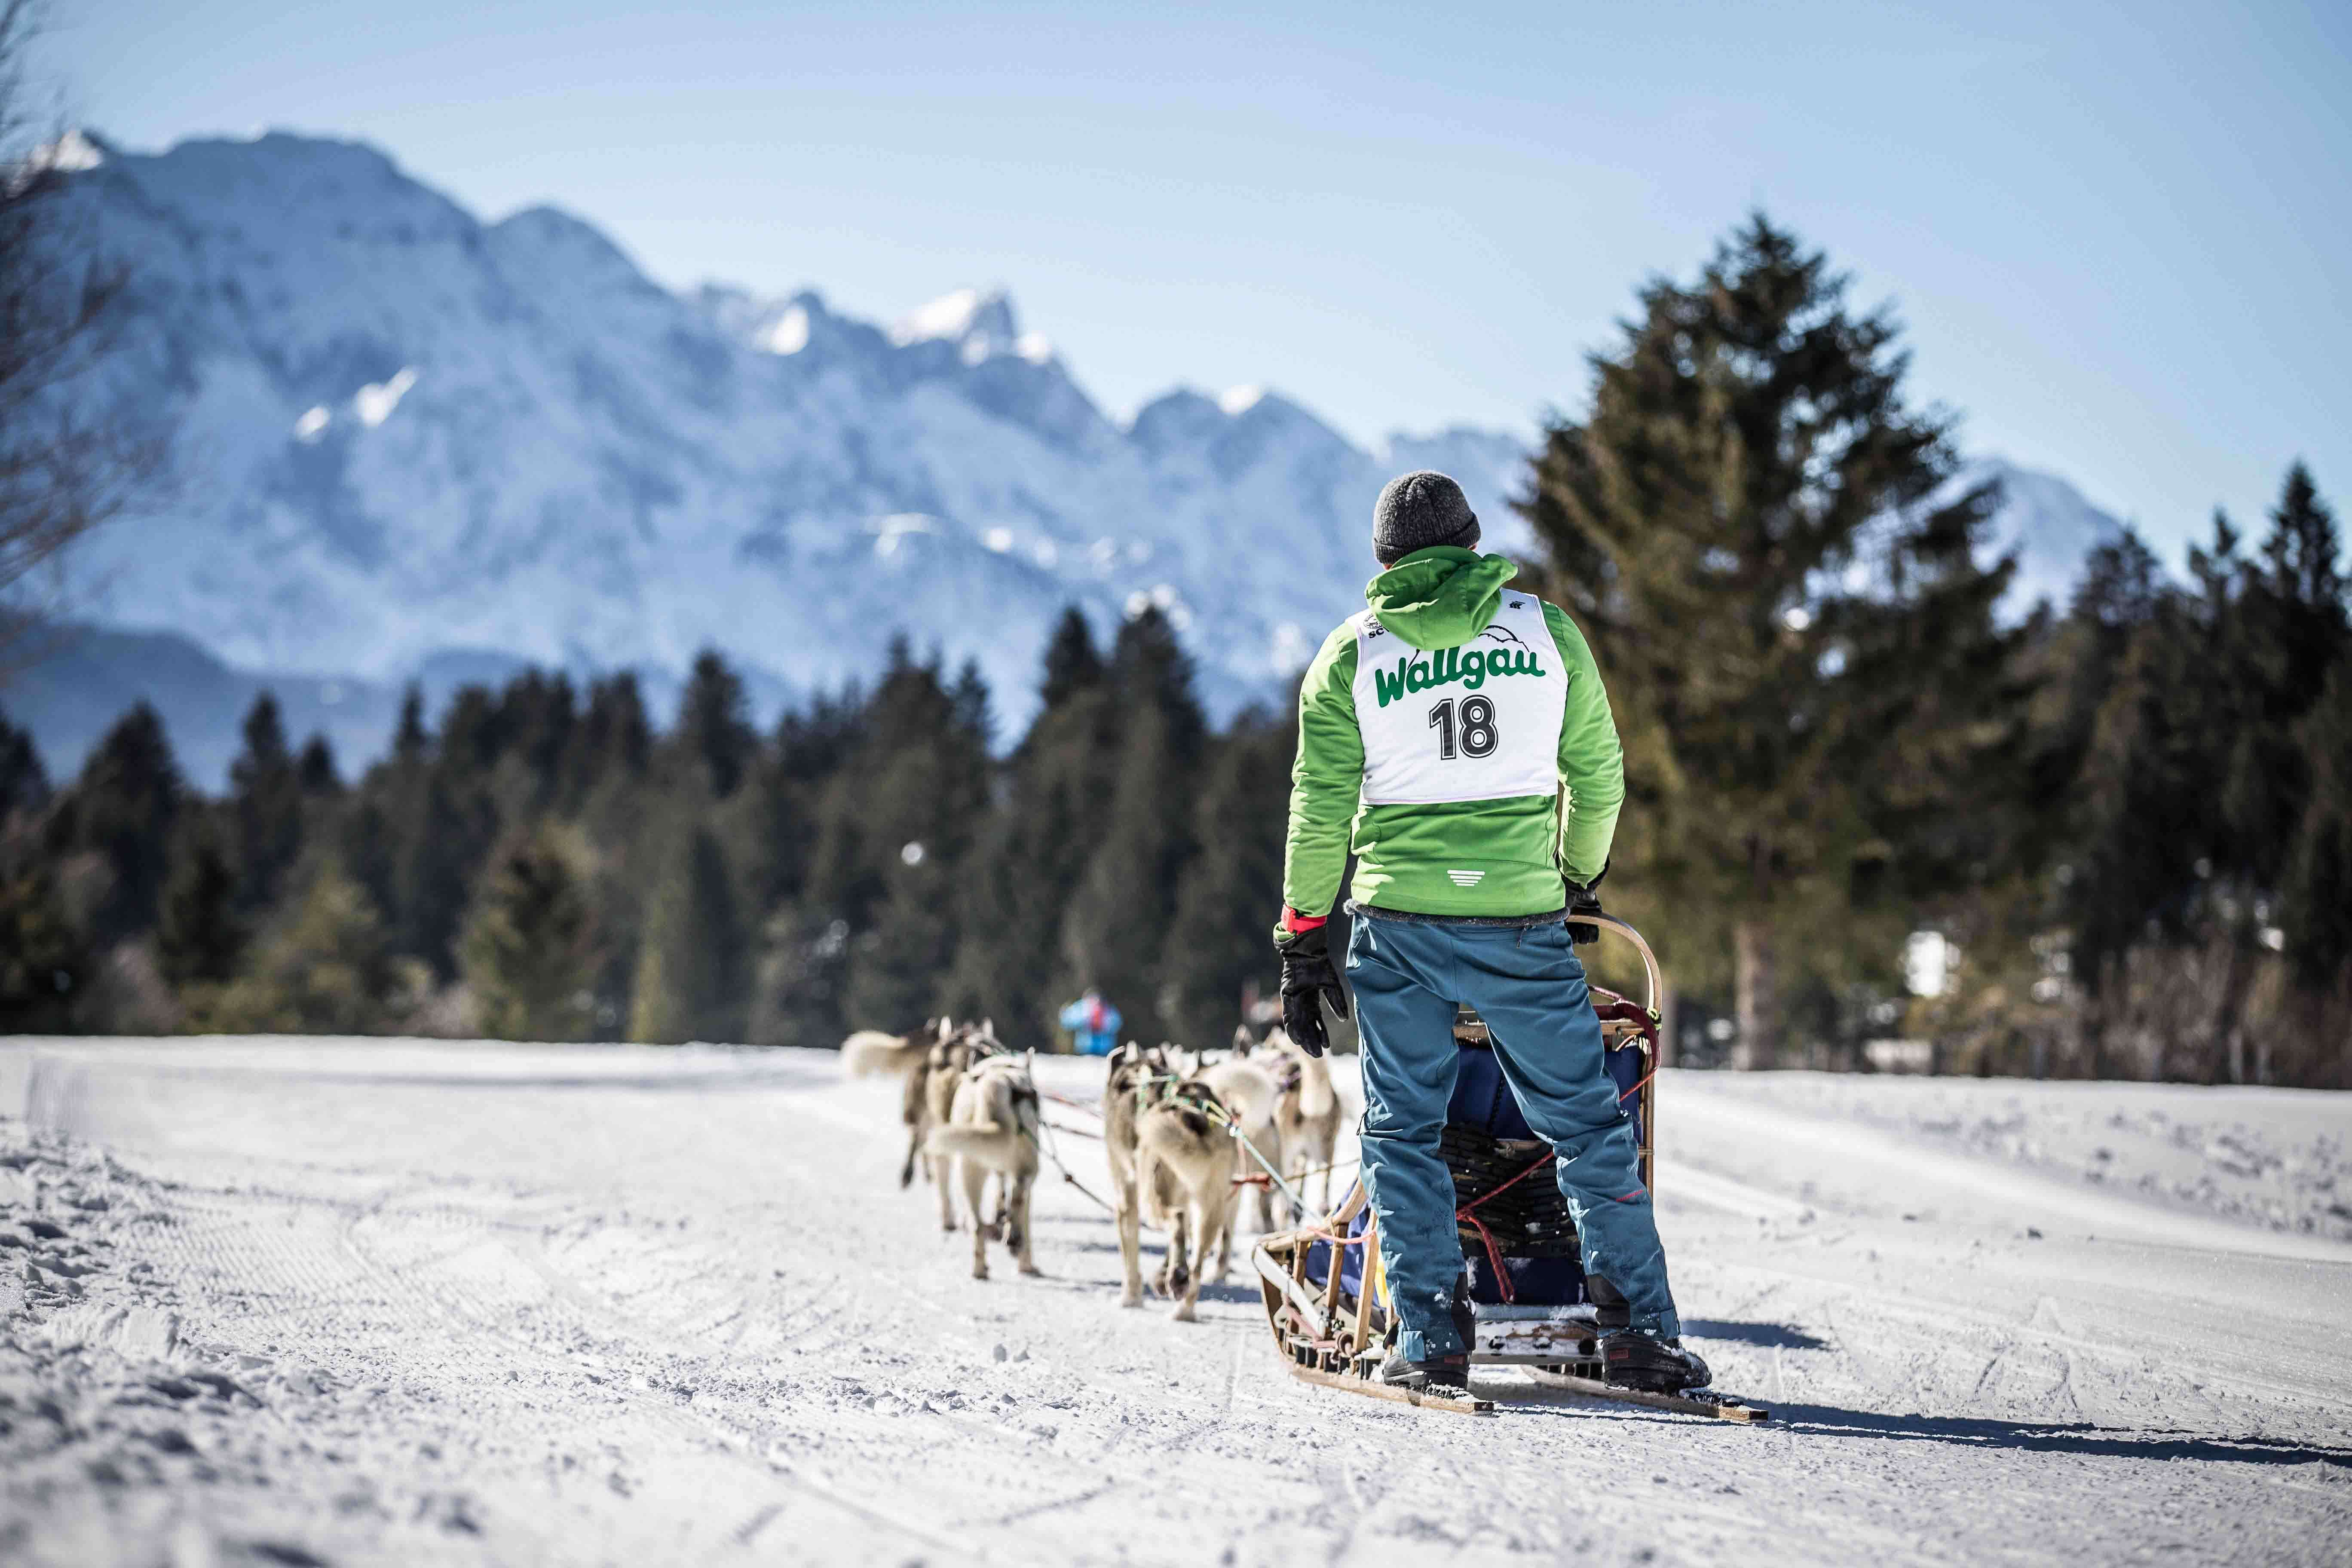 Internationales Schlittenhunderennen Wallgau